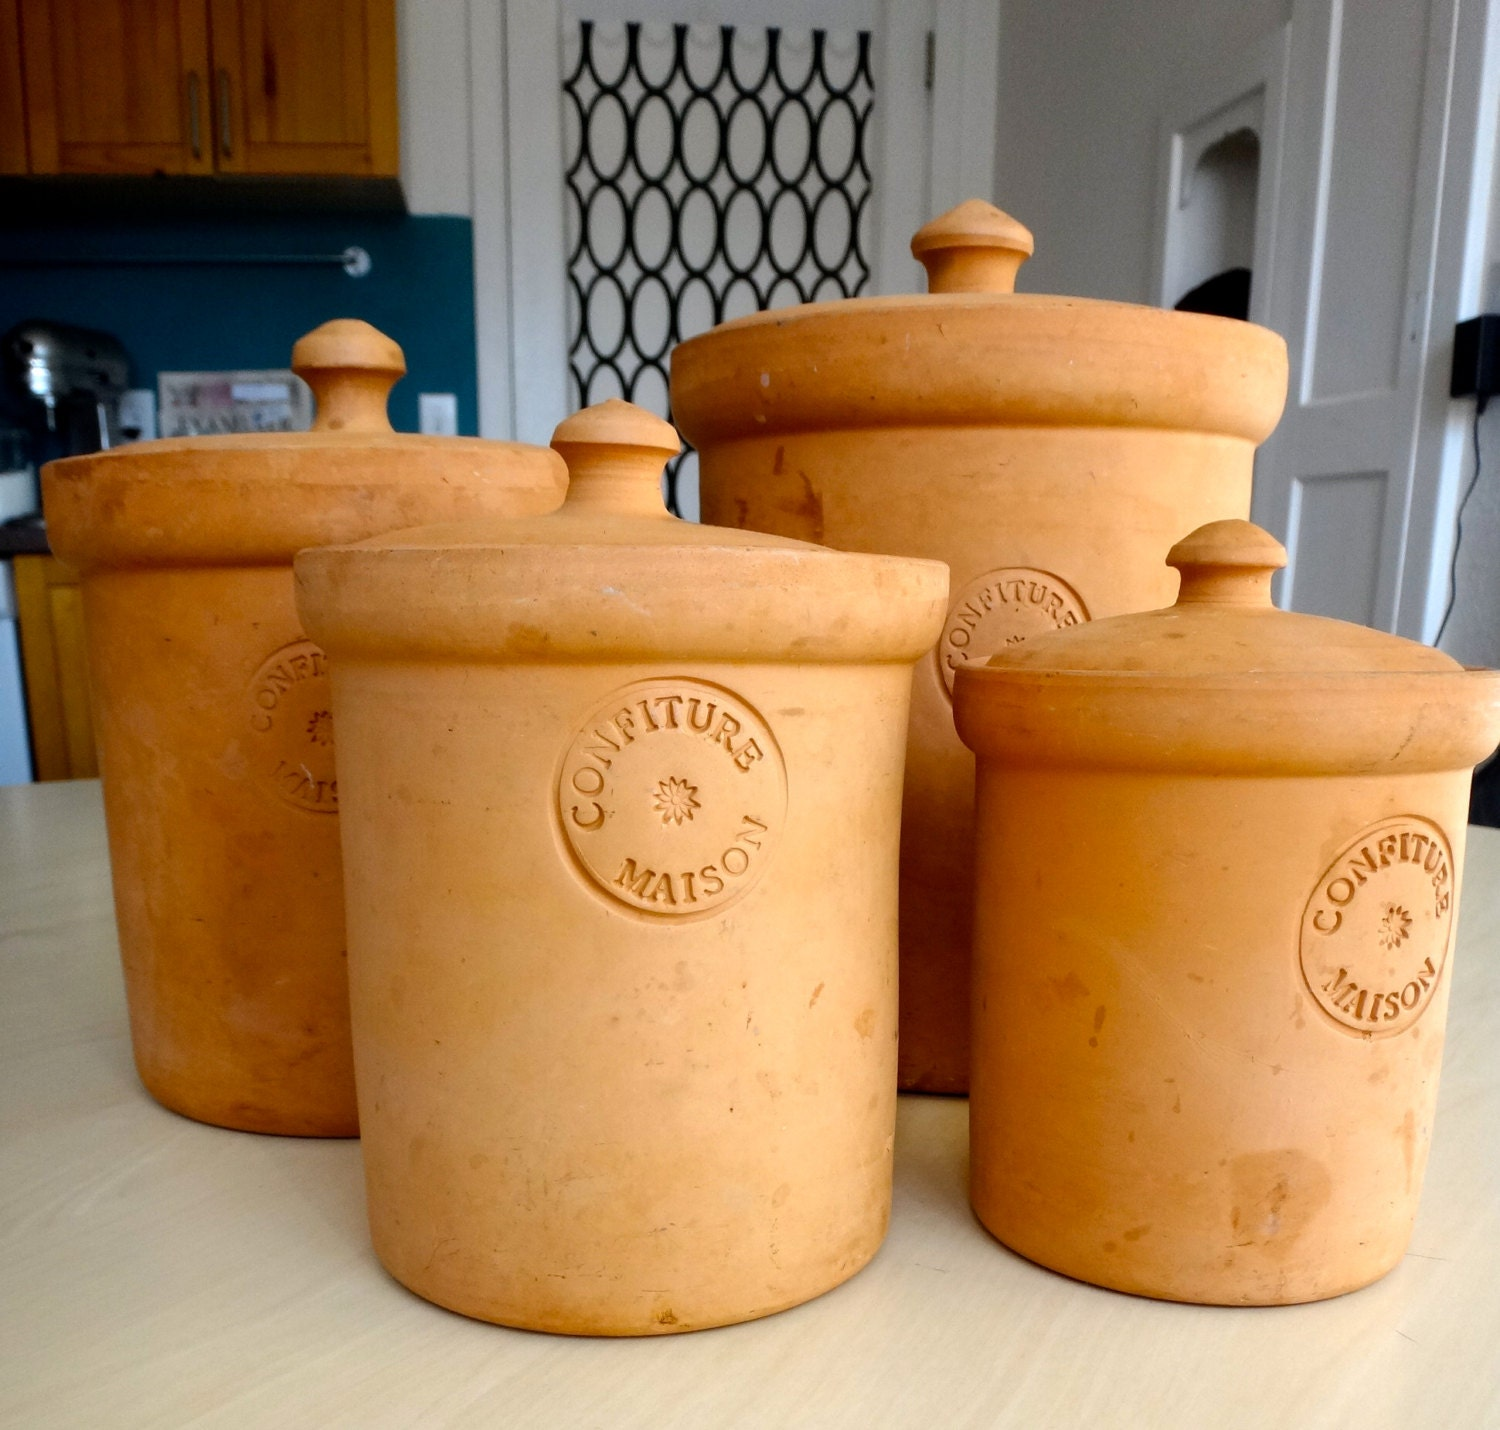 28 kitchen canisters set of 4 copper kitchen canisters set kitchen canisters set of 4 vintage kitchen canisters set of 4 terracotta